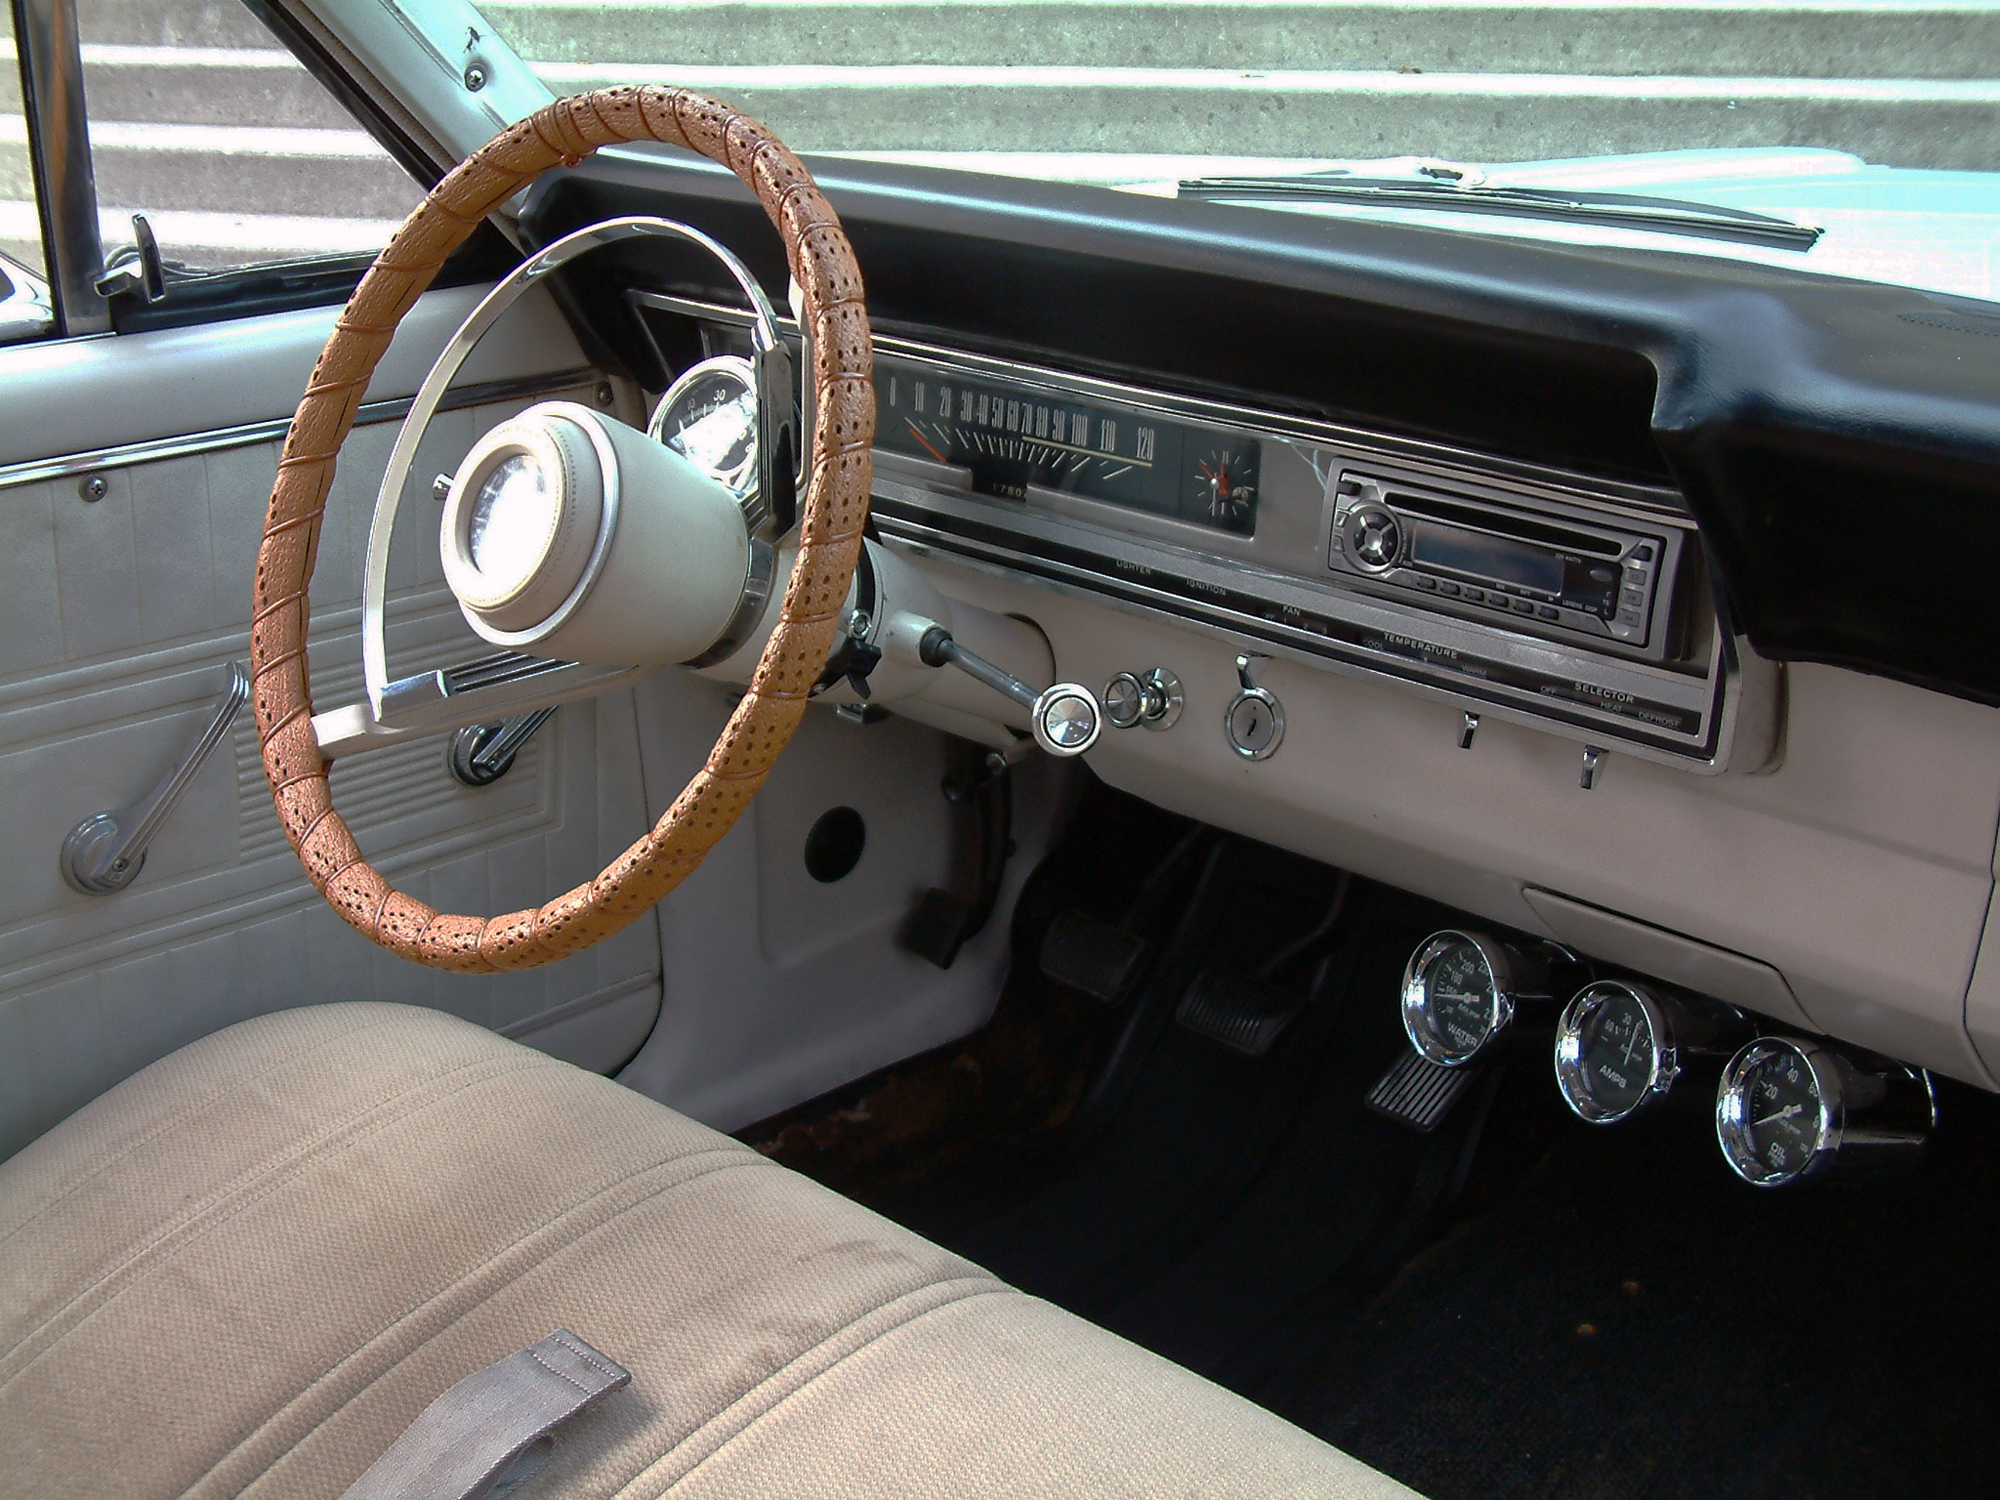 file67 ranchero interiorjpg